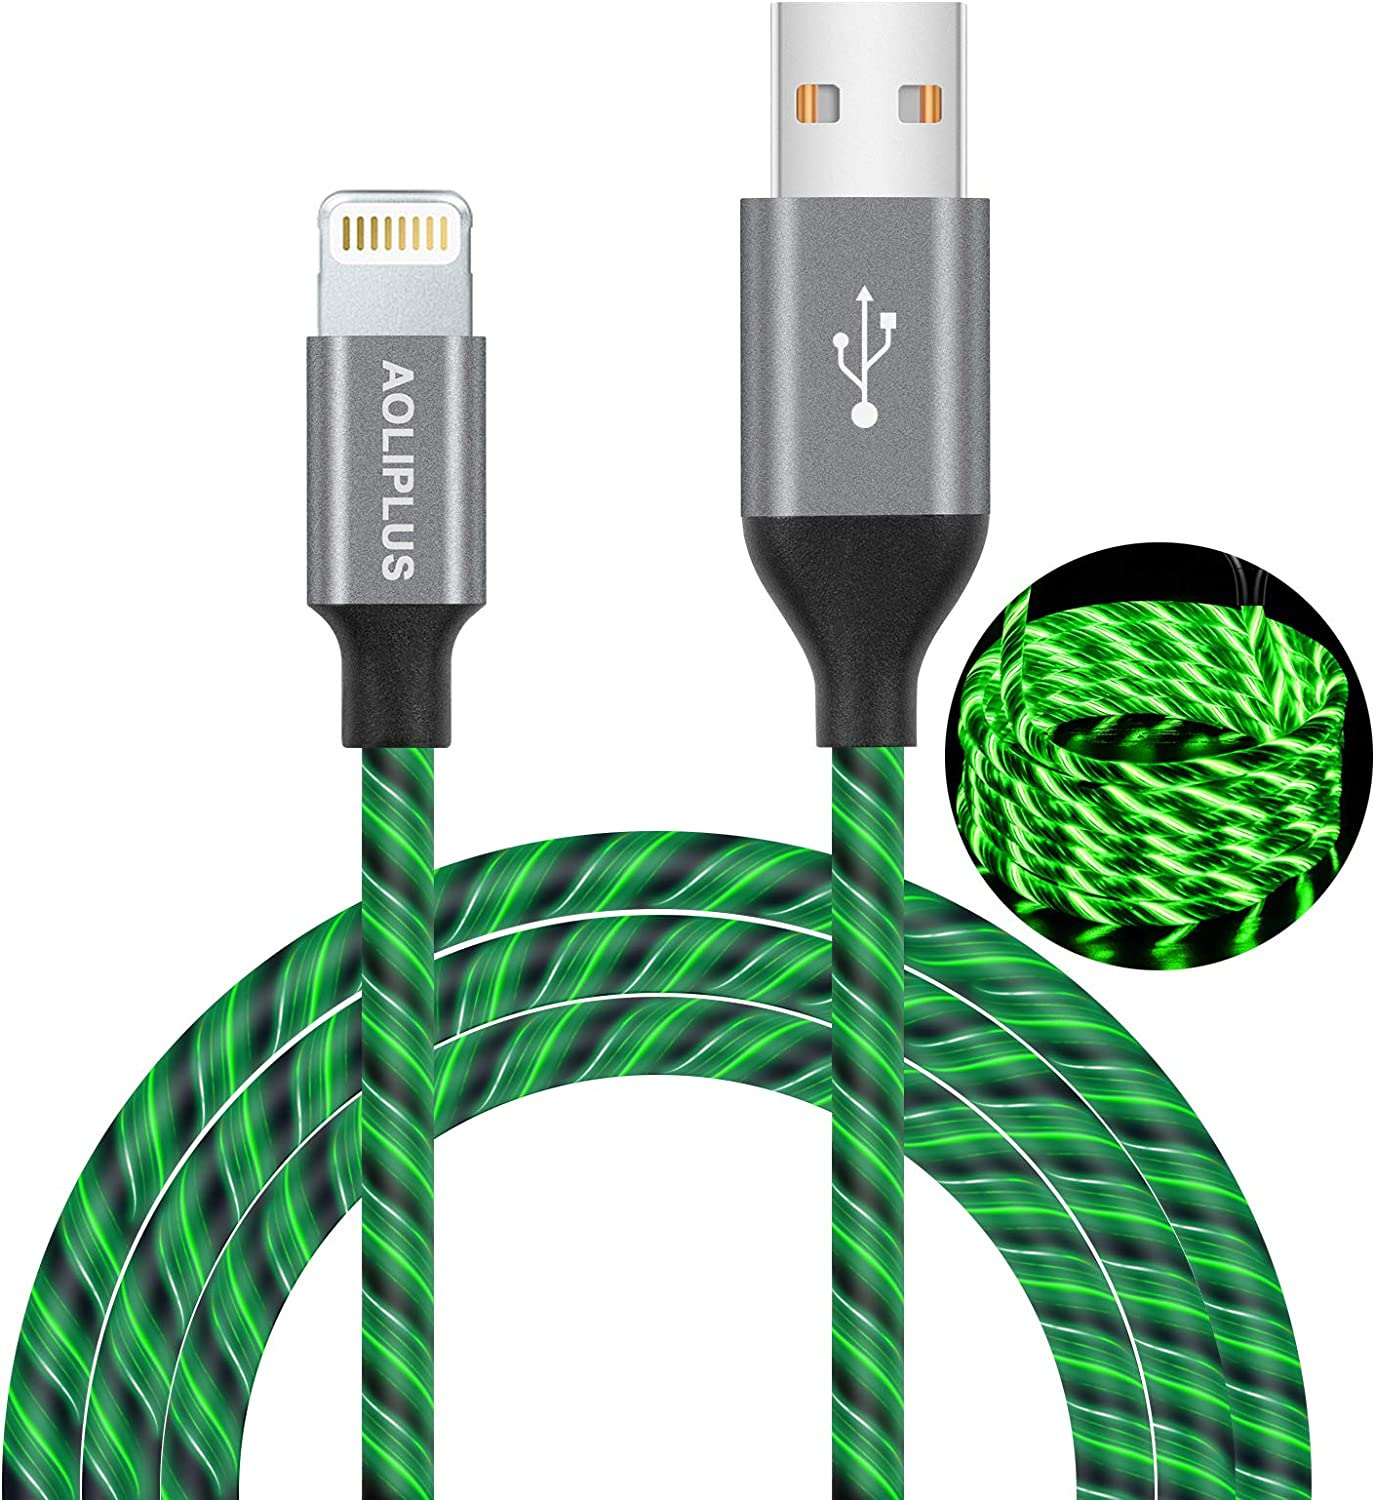 iPhone Charger Cable,[MFi Certified] Aoliplus 6ft LED Flowing Lightning Cable Fast Charger Data Sync Transfer Cord Compatible with iPhone SE 11 PRO MAX XS XR X 8 7 Plus 6S 6 iPad (Green)